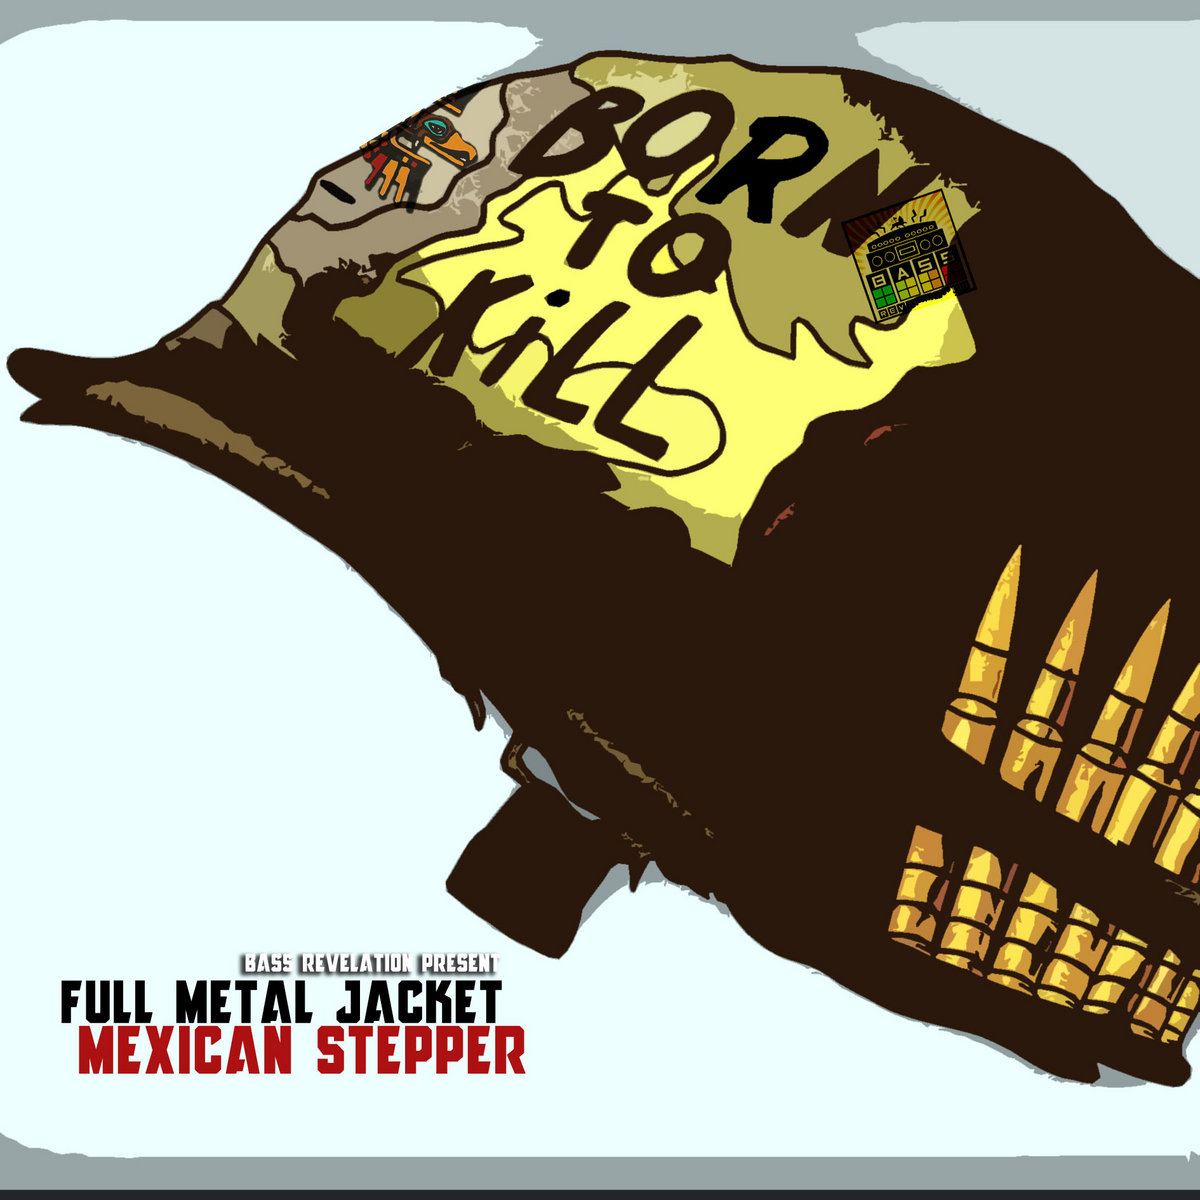 full metal jacket soundtrack mp3 download